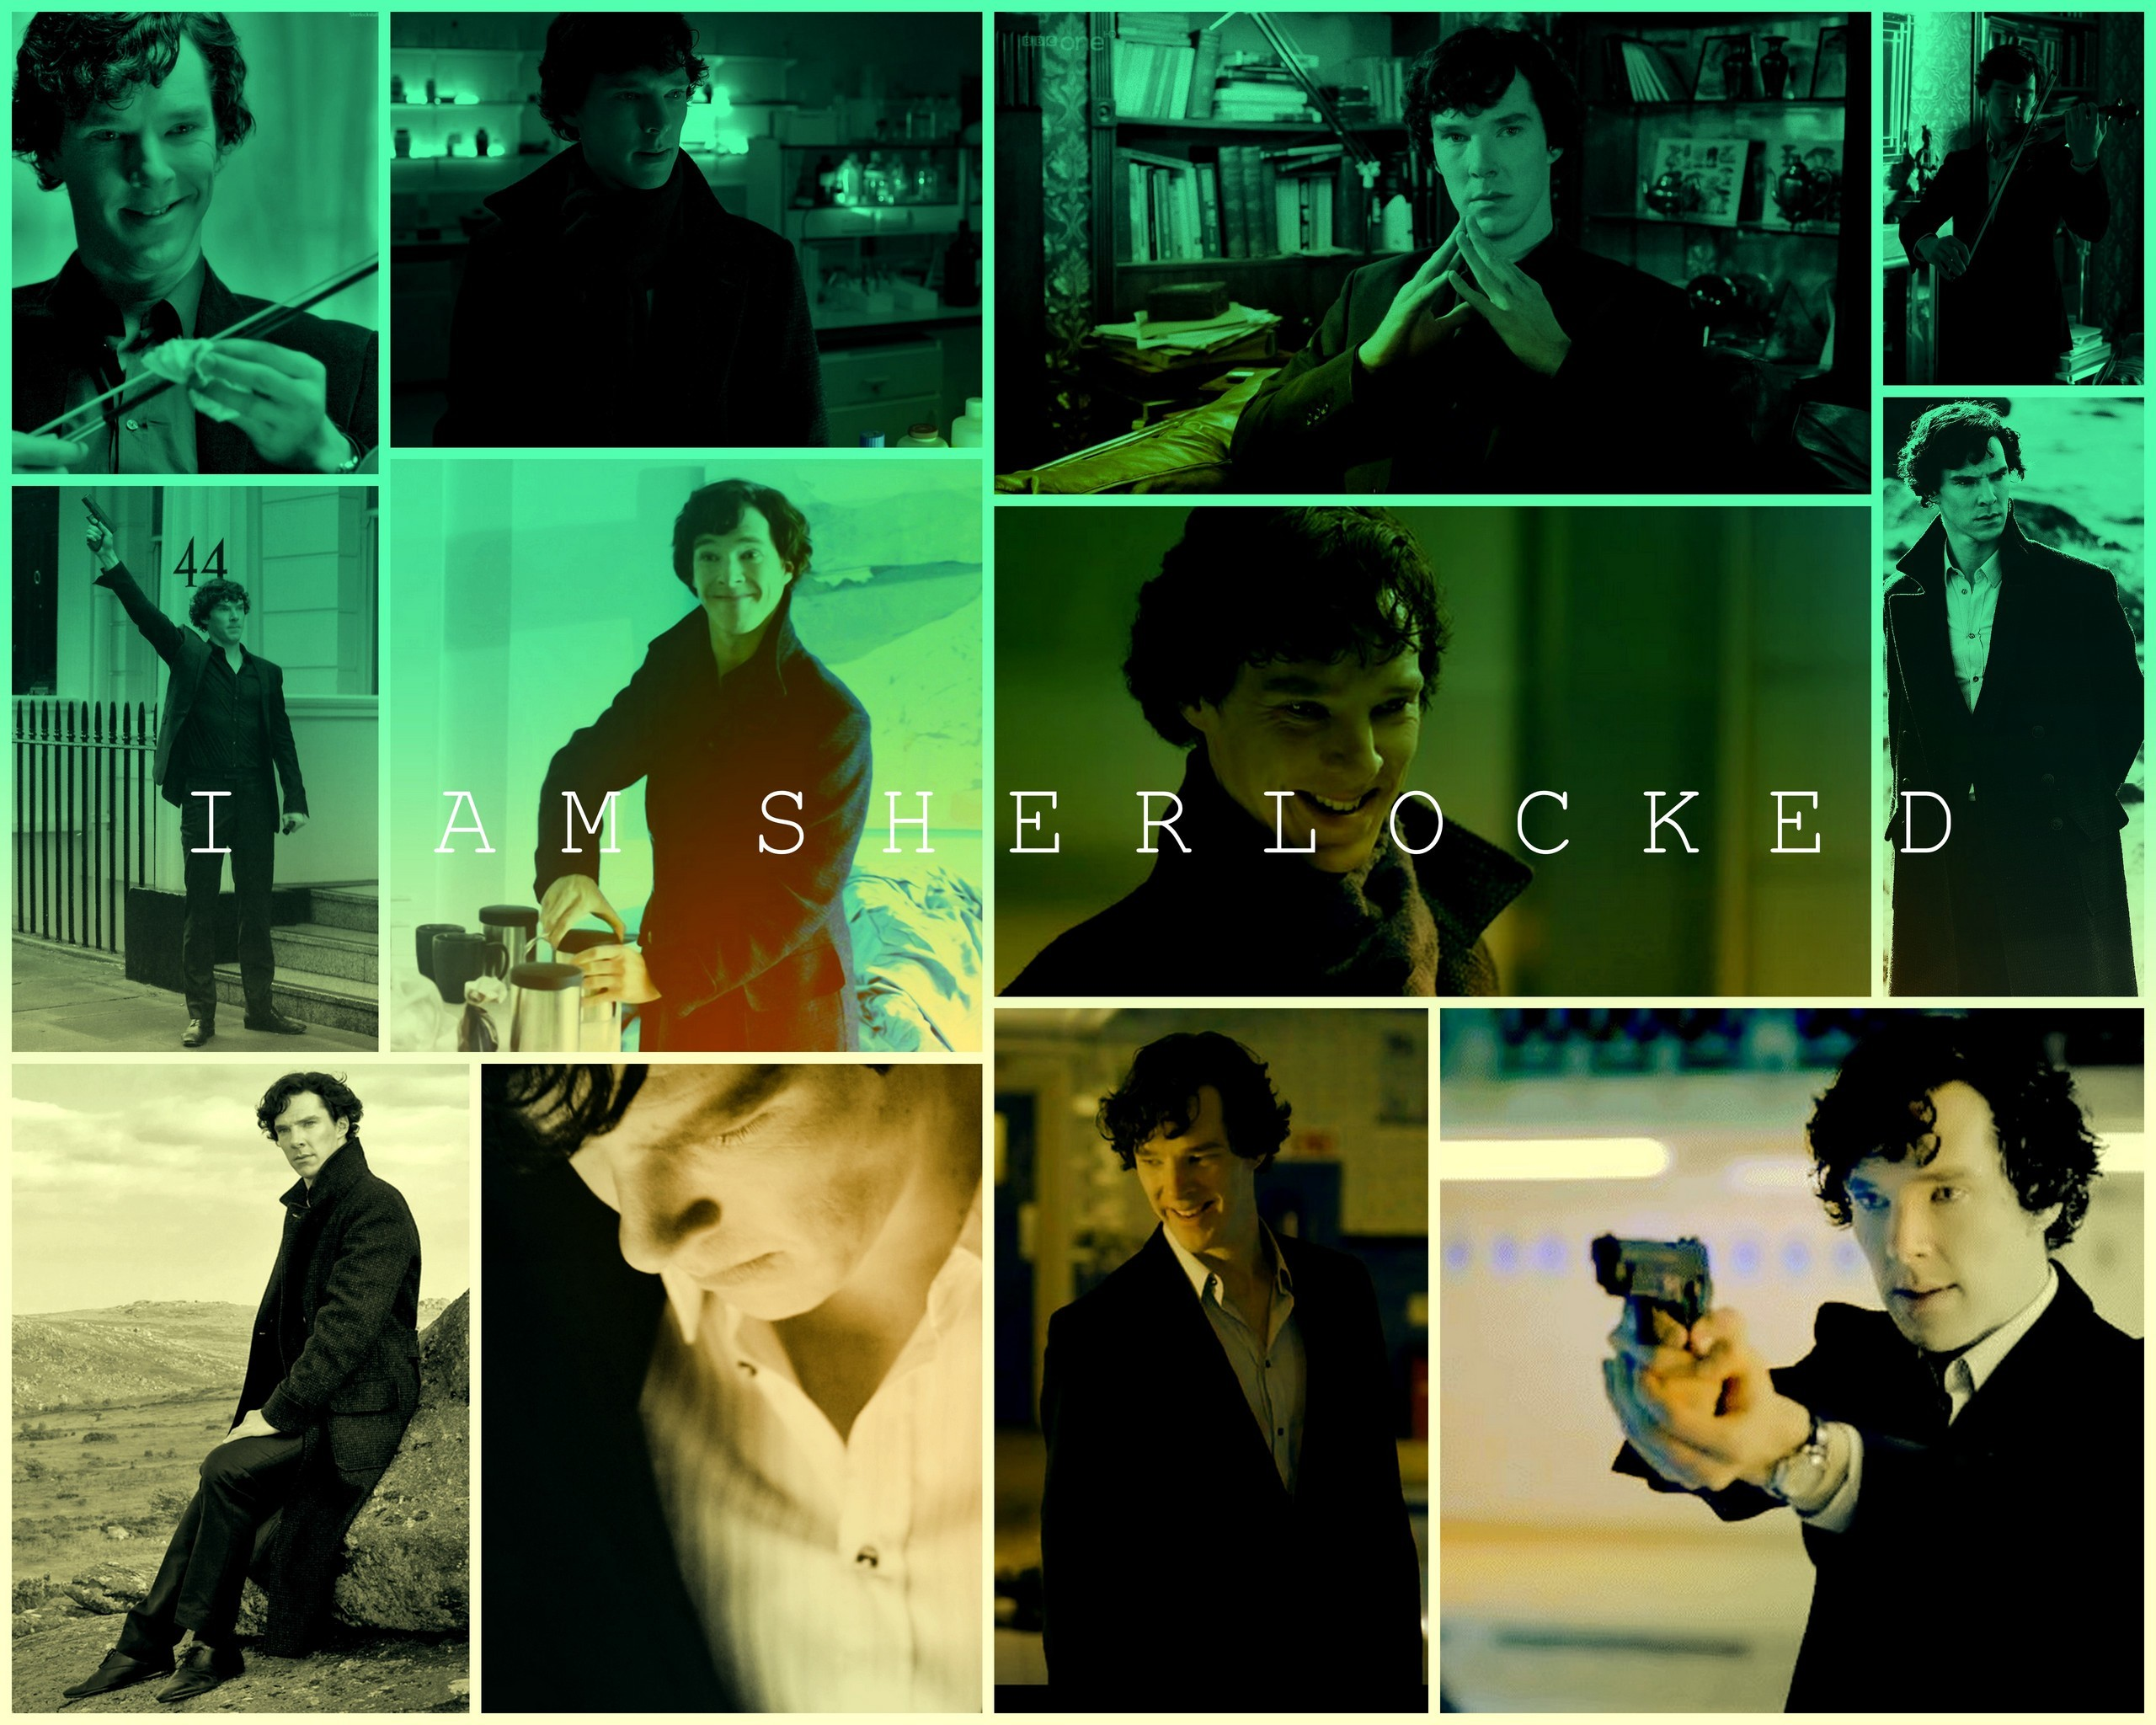 HD Wallpaper and background photos of i am sherlocked for fans of Sherlock  on BBC One images. 31800129